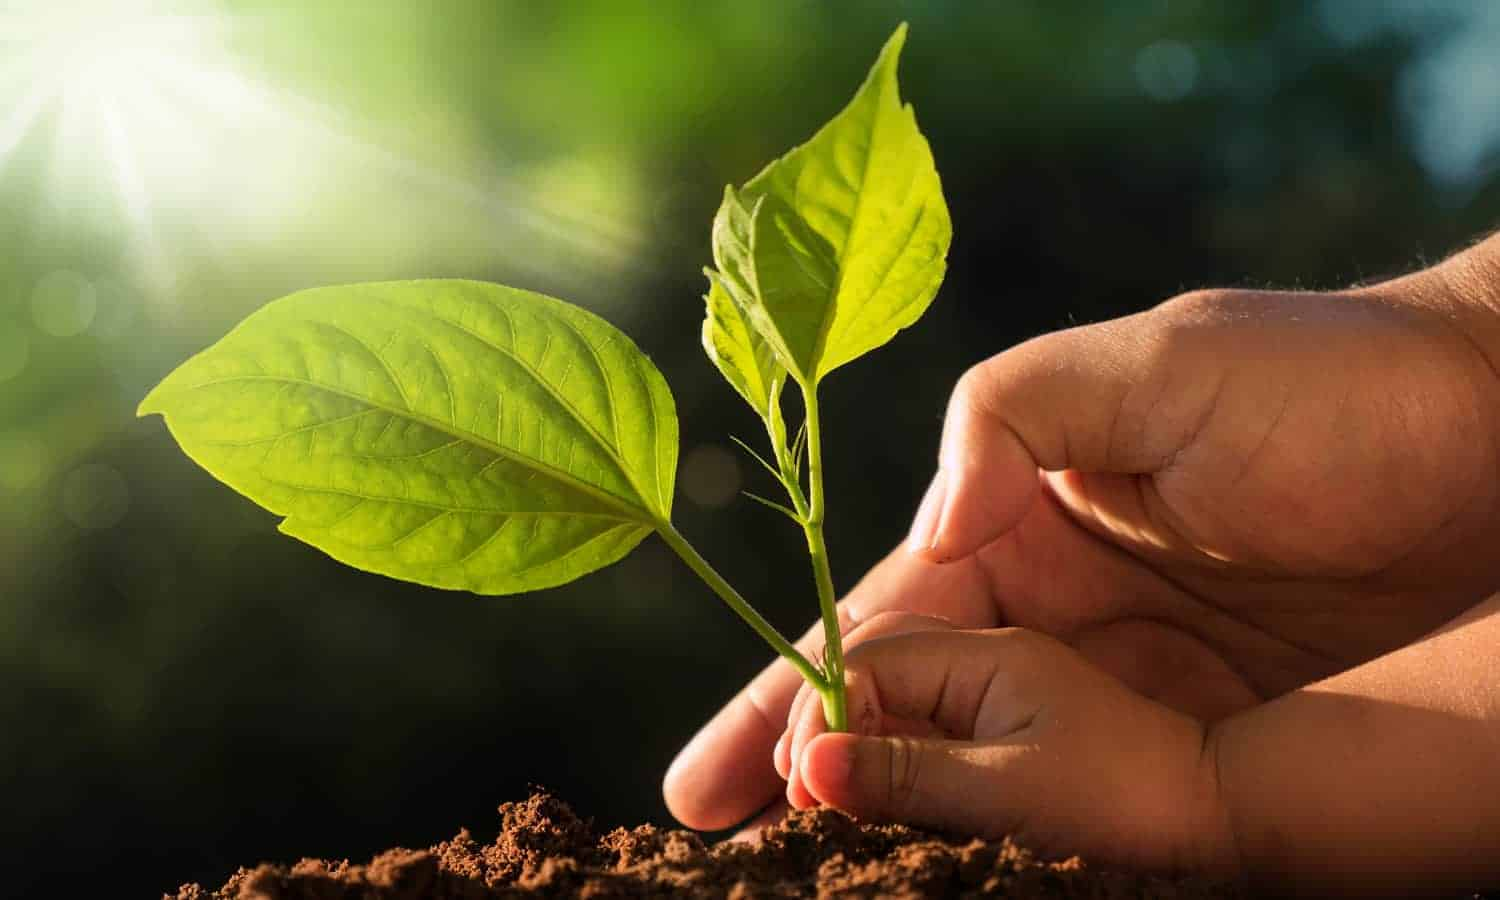 "The theme of World Soil day 2020, according to the Food and Agriculture Organization (FAO) campaign, is ""Keep soil alive, protect soil biodiversity"". By encouraging people around the world to engage in proactively improving soil health, the campaign aims to fight soil biodiversity loss. Photo: Supplied"